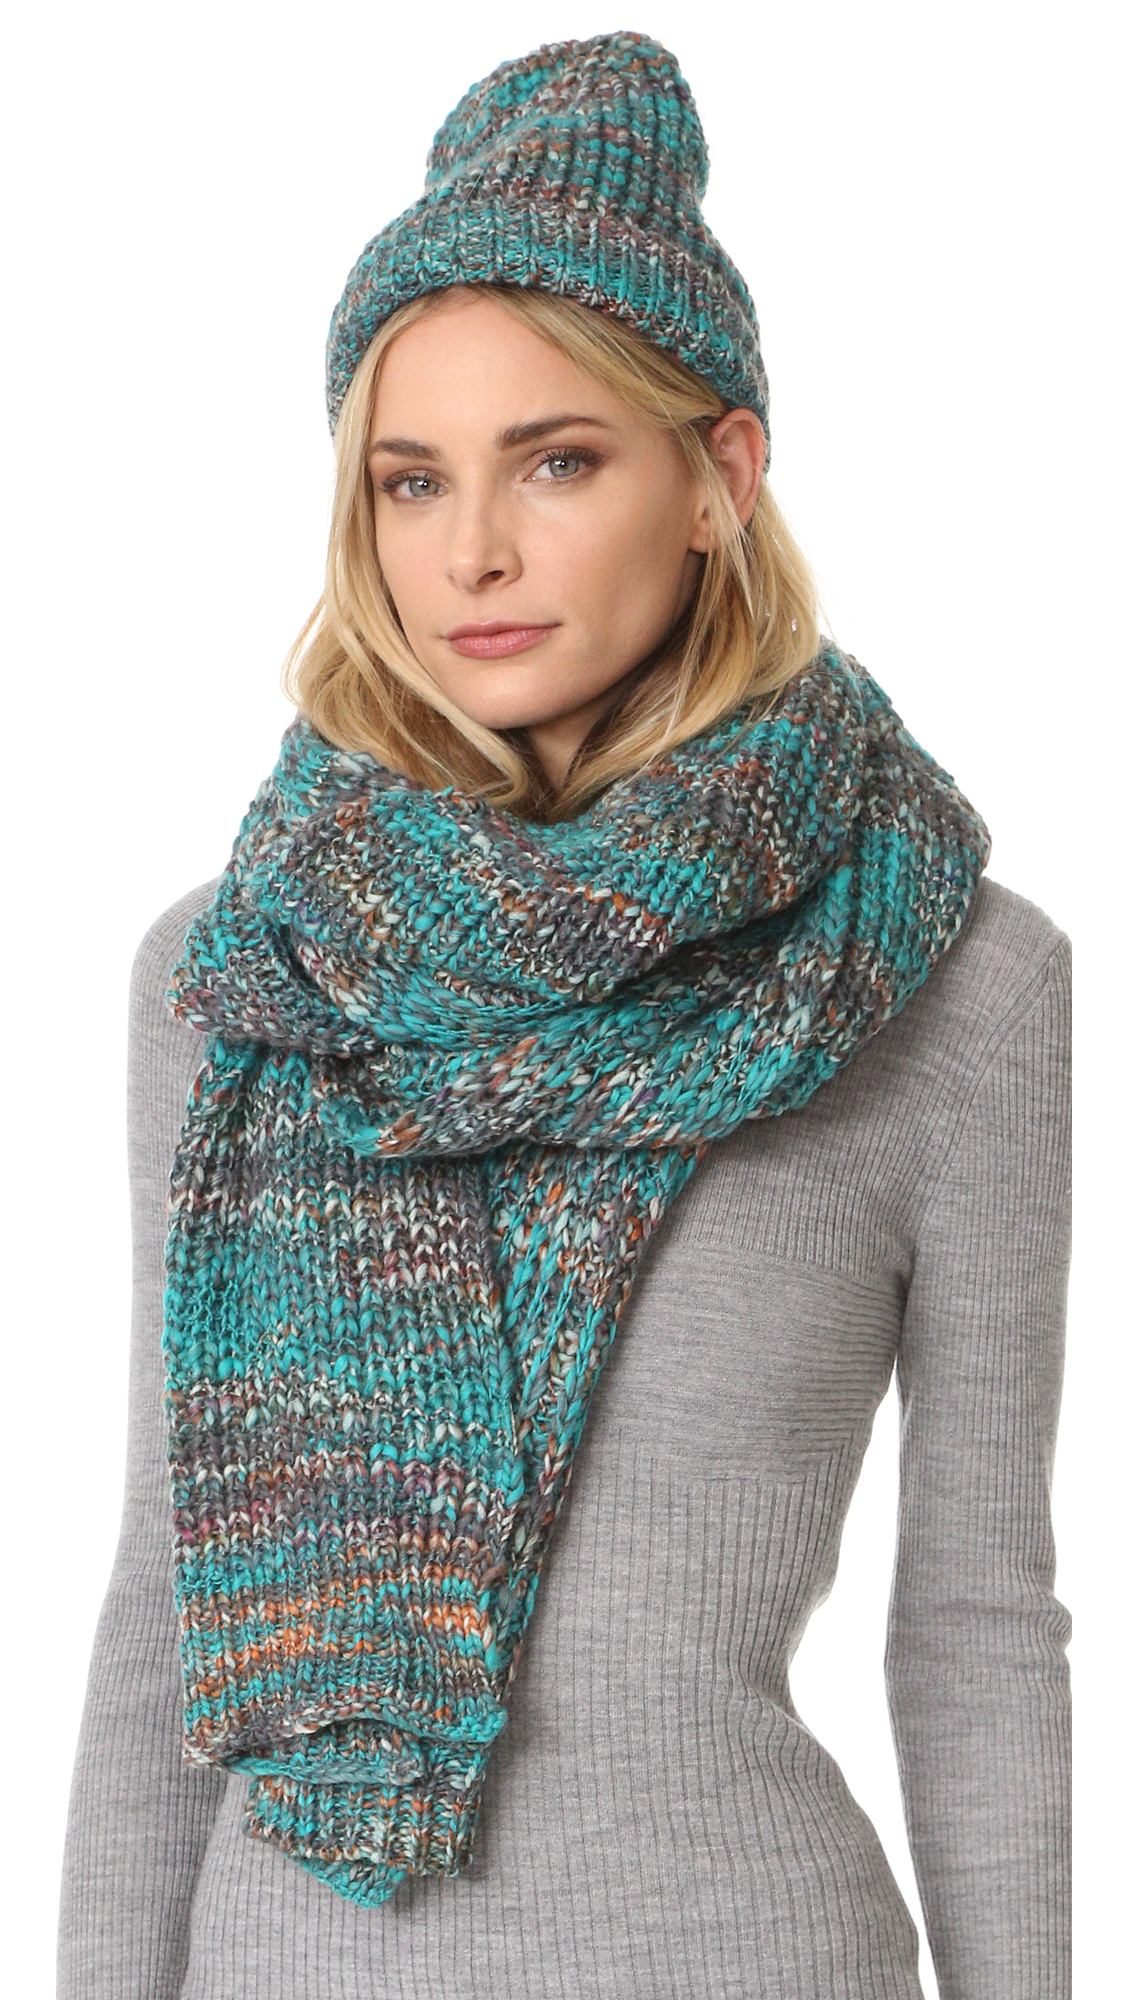 Acne Studios Zefir Multicolor Scarf - Turquoise Mix at Shopbop